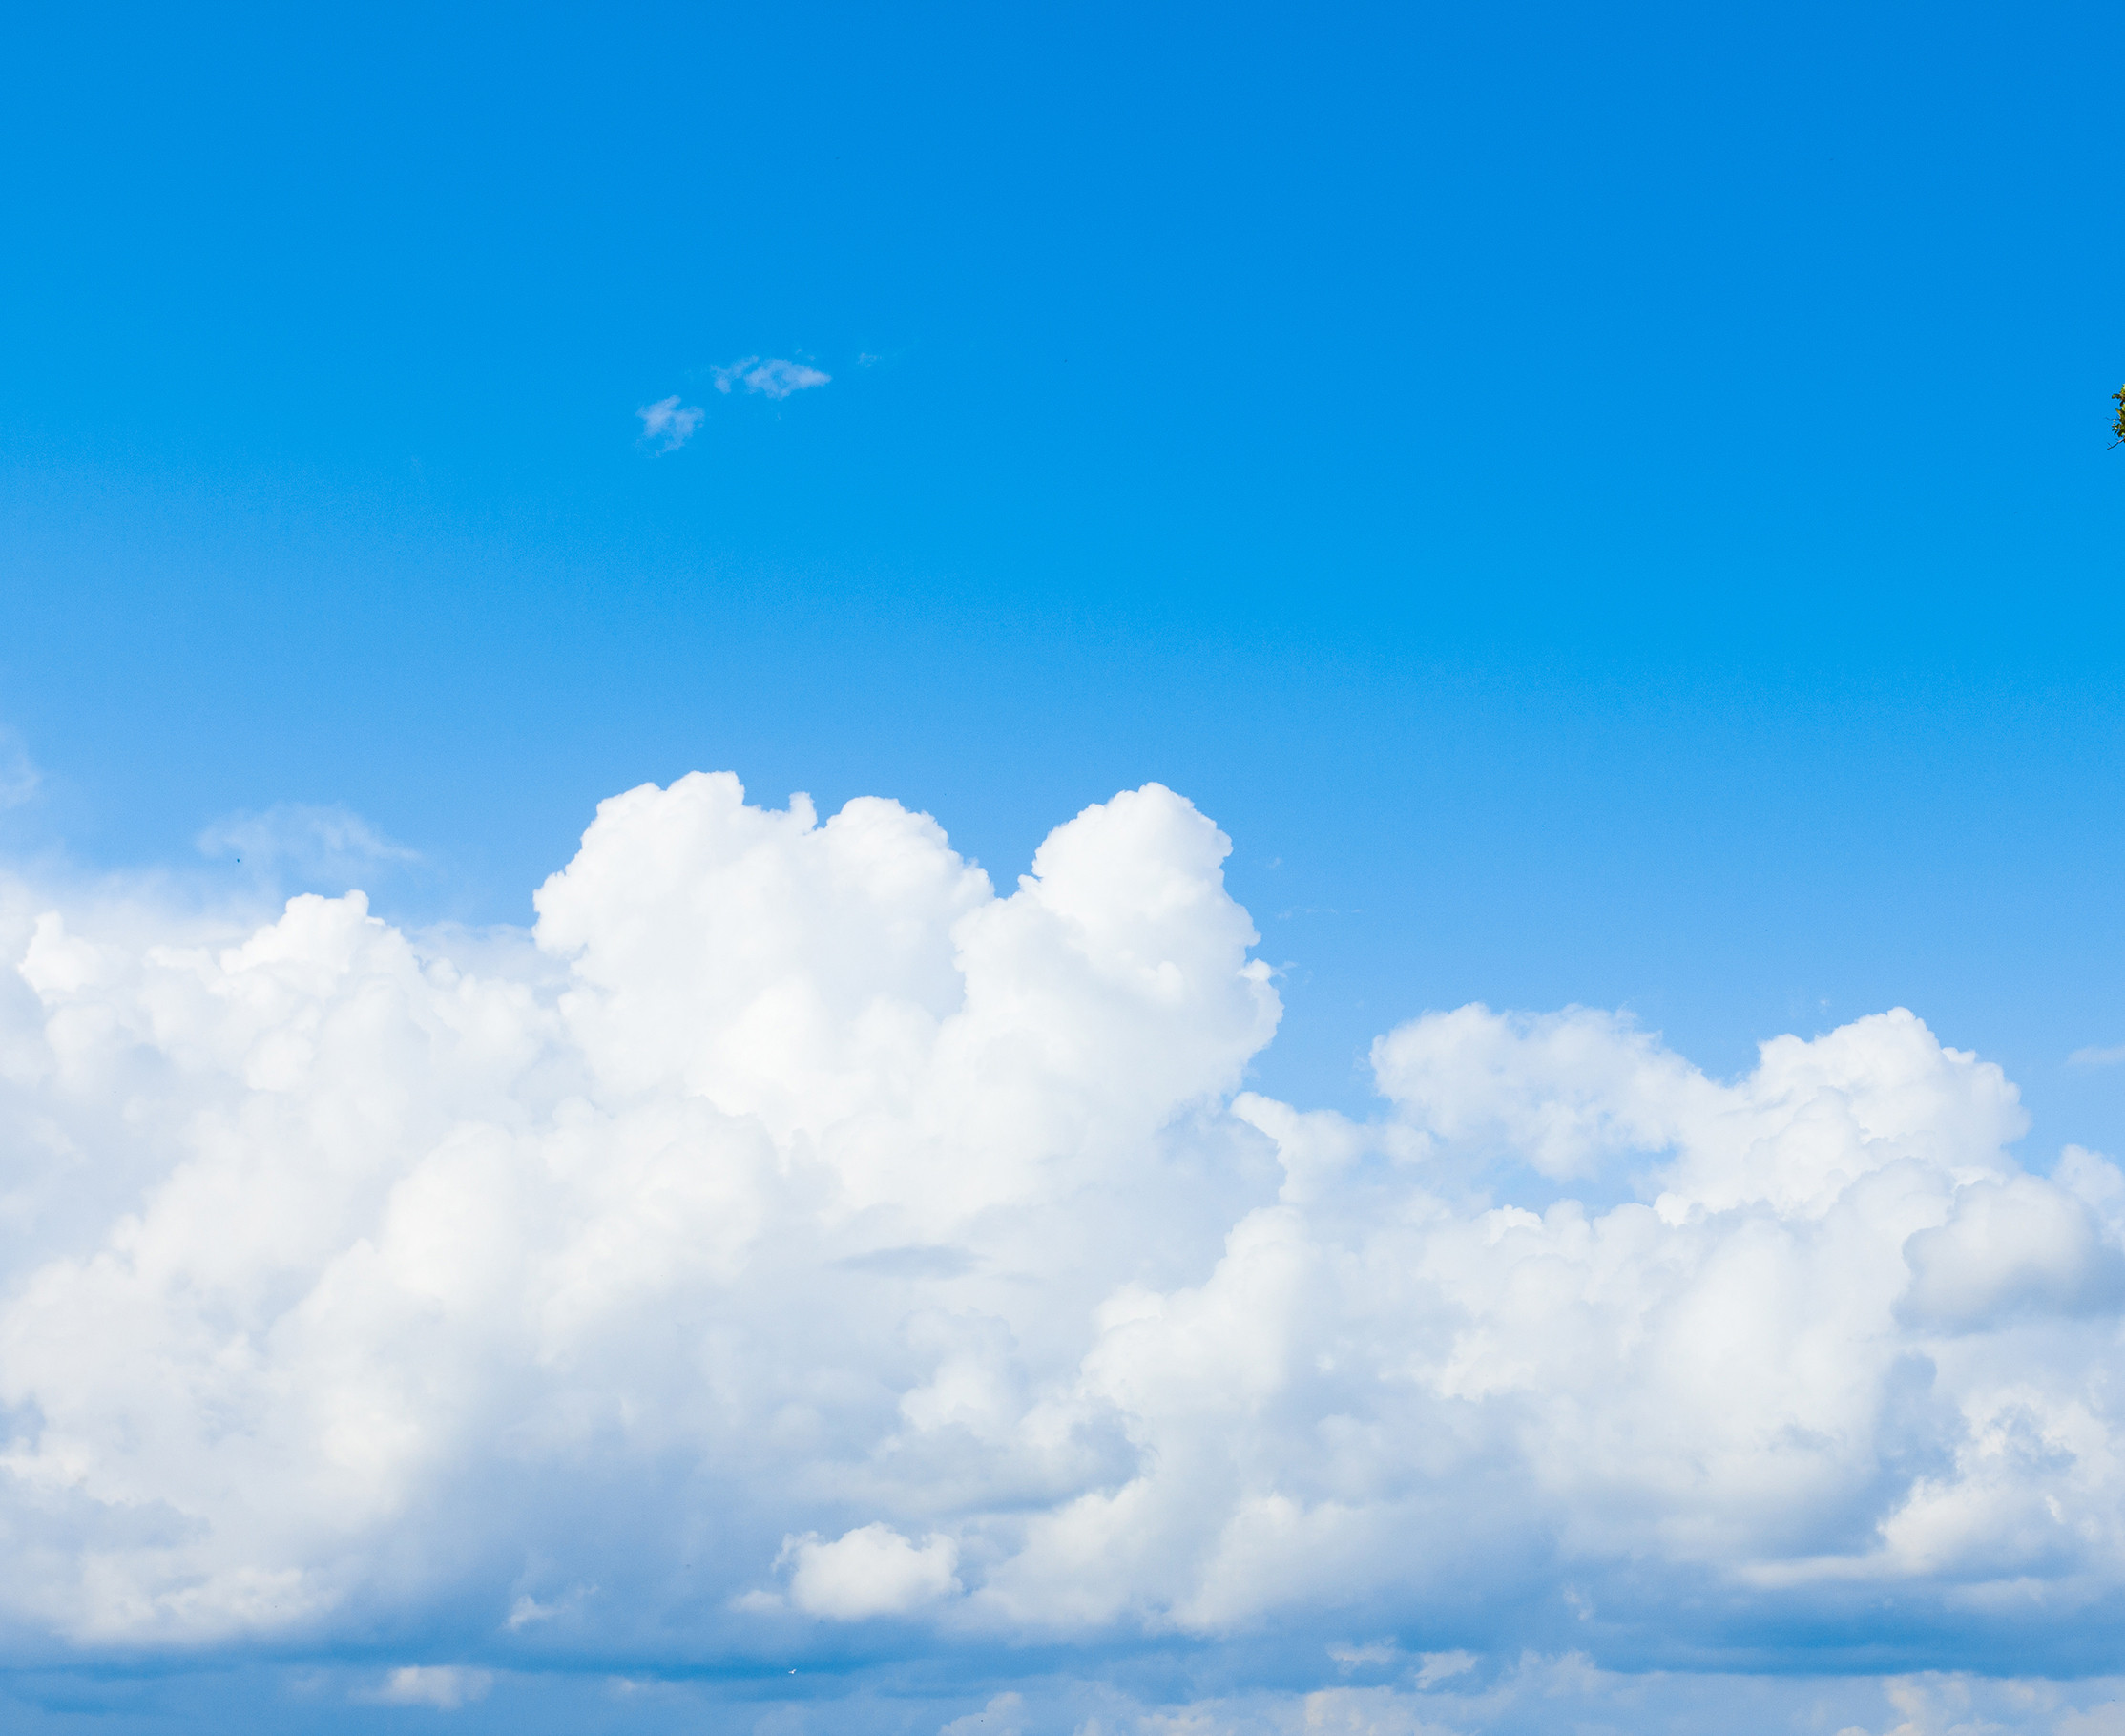 bigstock-Blue-Sunshine-Clouds-12729821